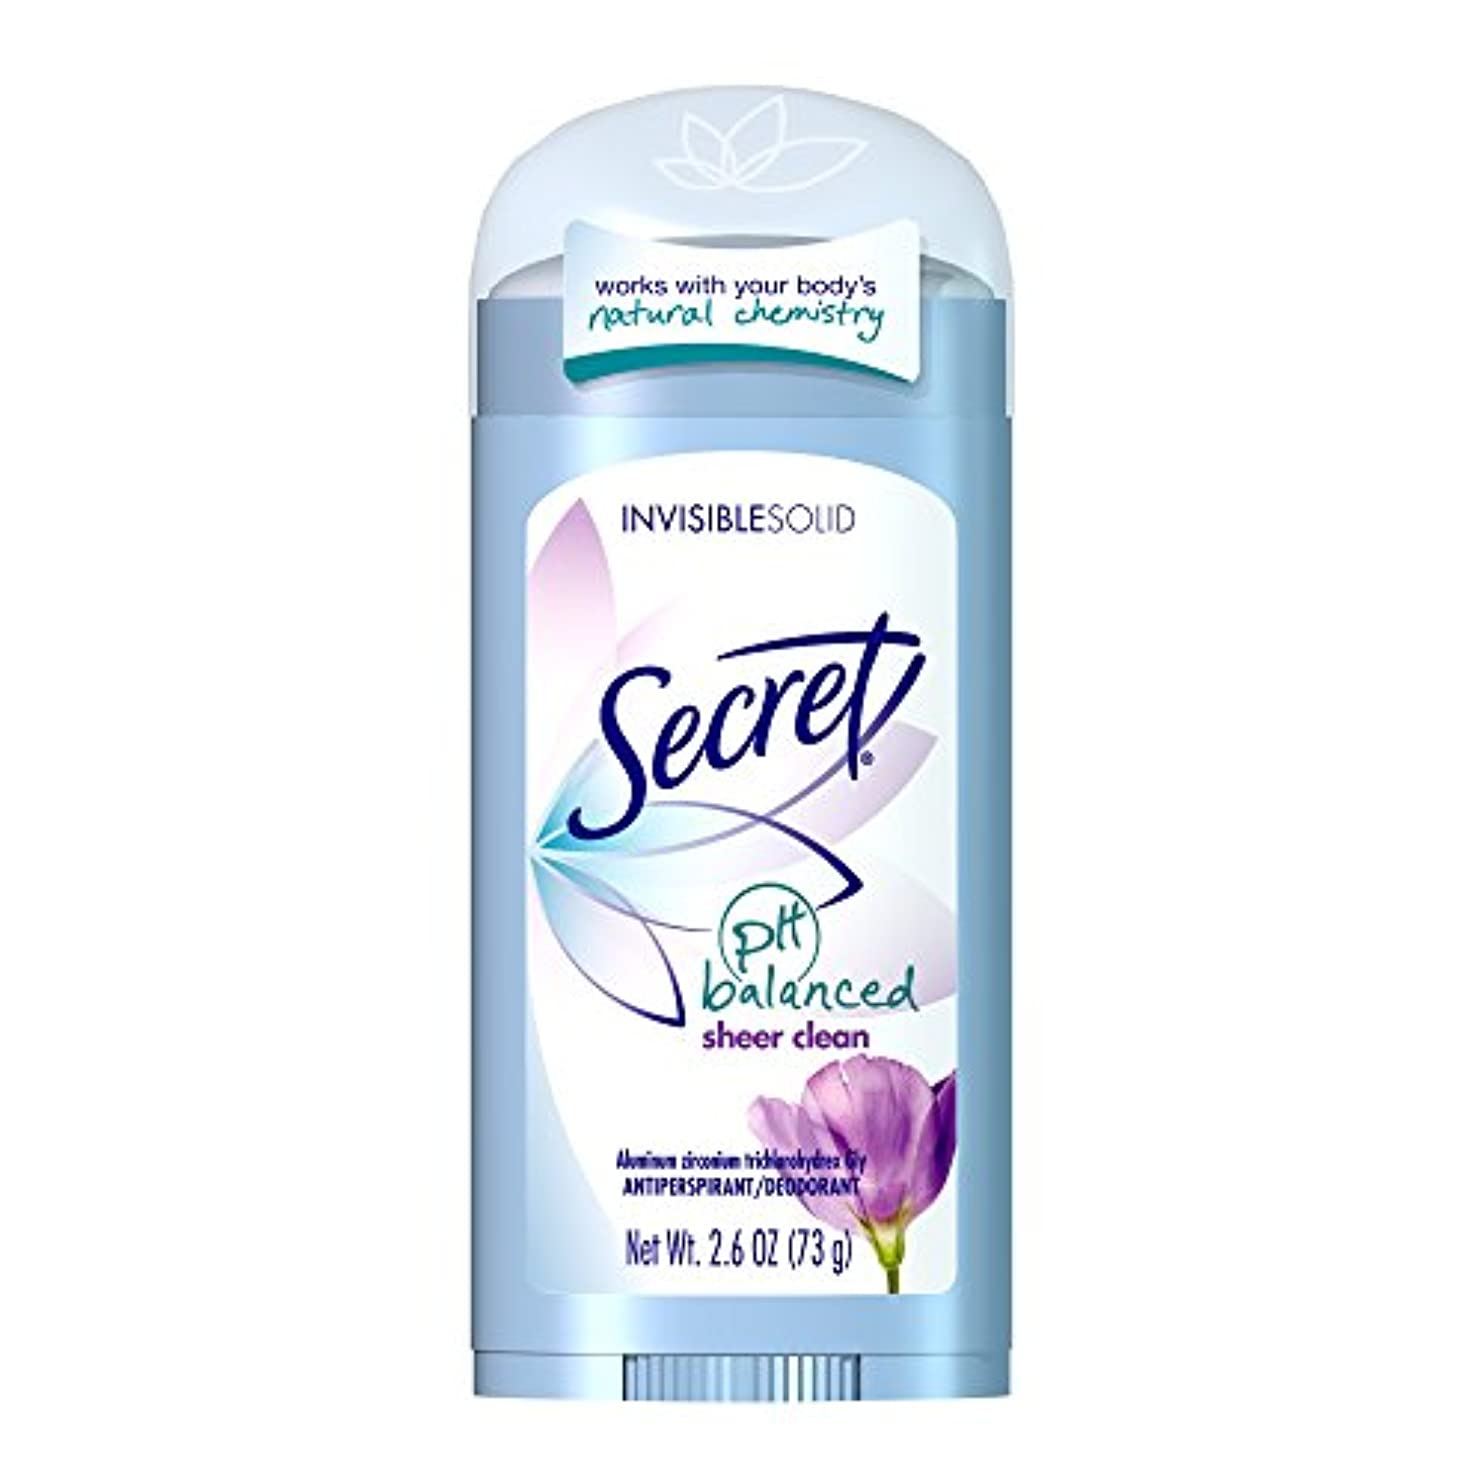 ハーブ伝統的ギネスSecret Original Strength Antiperspirant and Deodorant Invisible Solid, Sheer Clean, 2.6 Oz (並行輸入品)